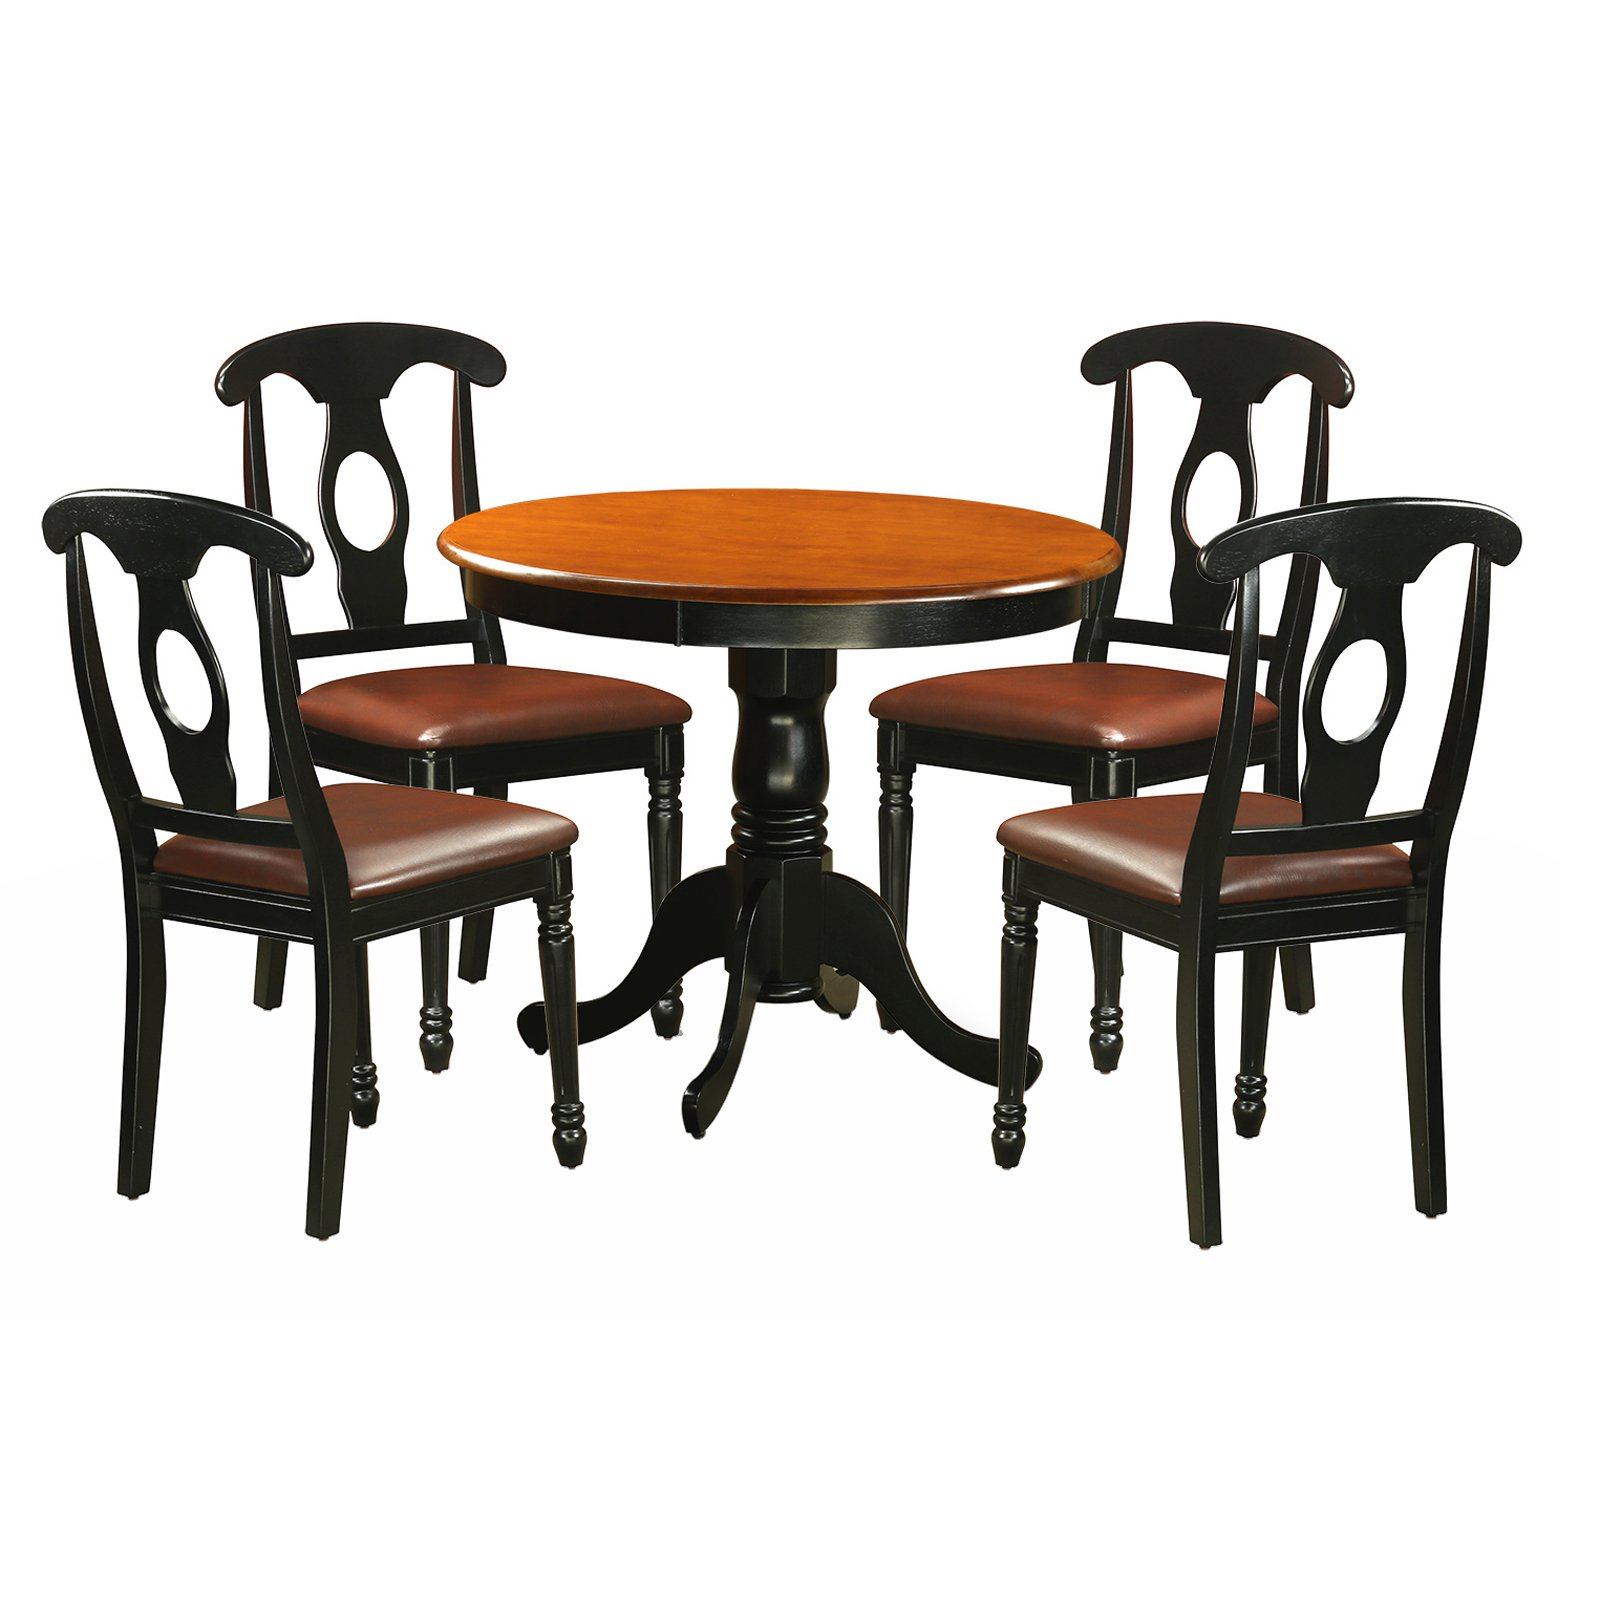 Round Dining Table With Leather Chairs: East West Furniture Antique 5 Piece Pedestal Round Dining